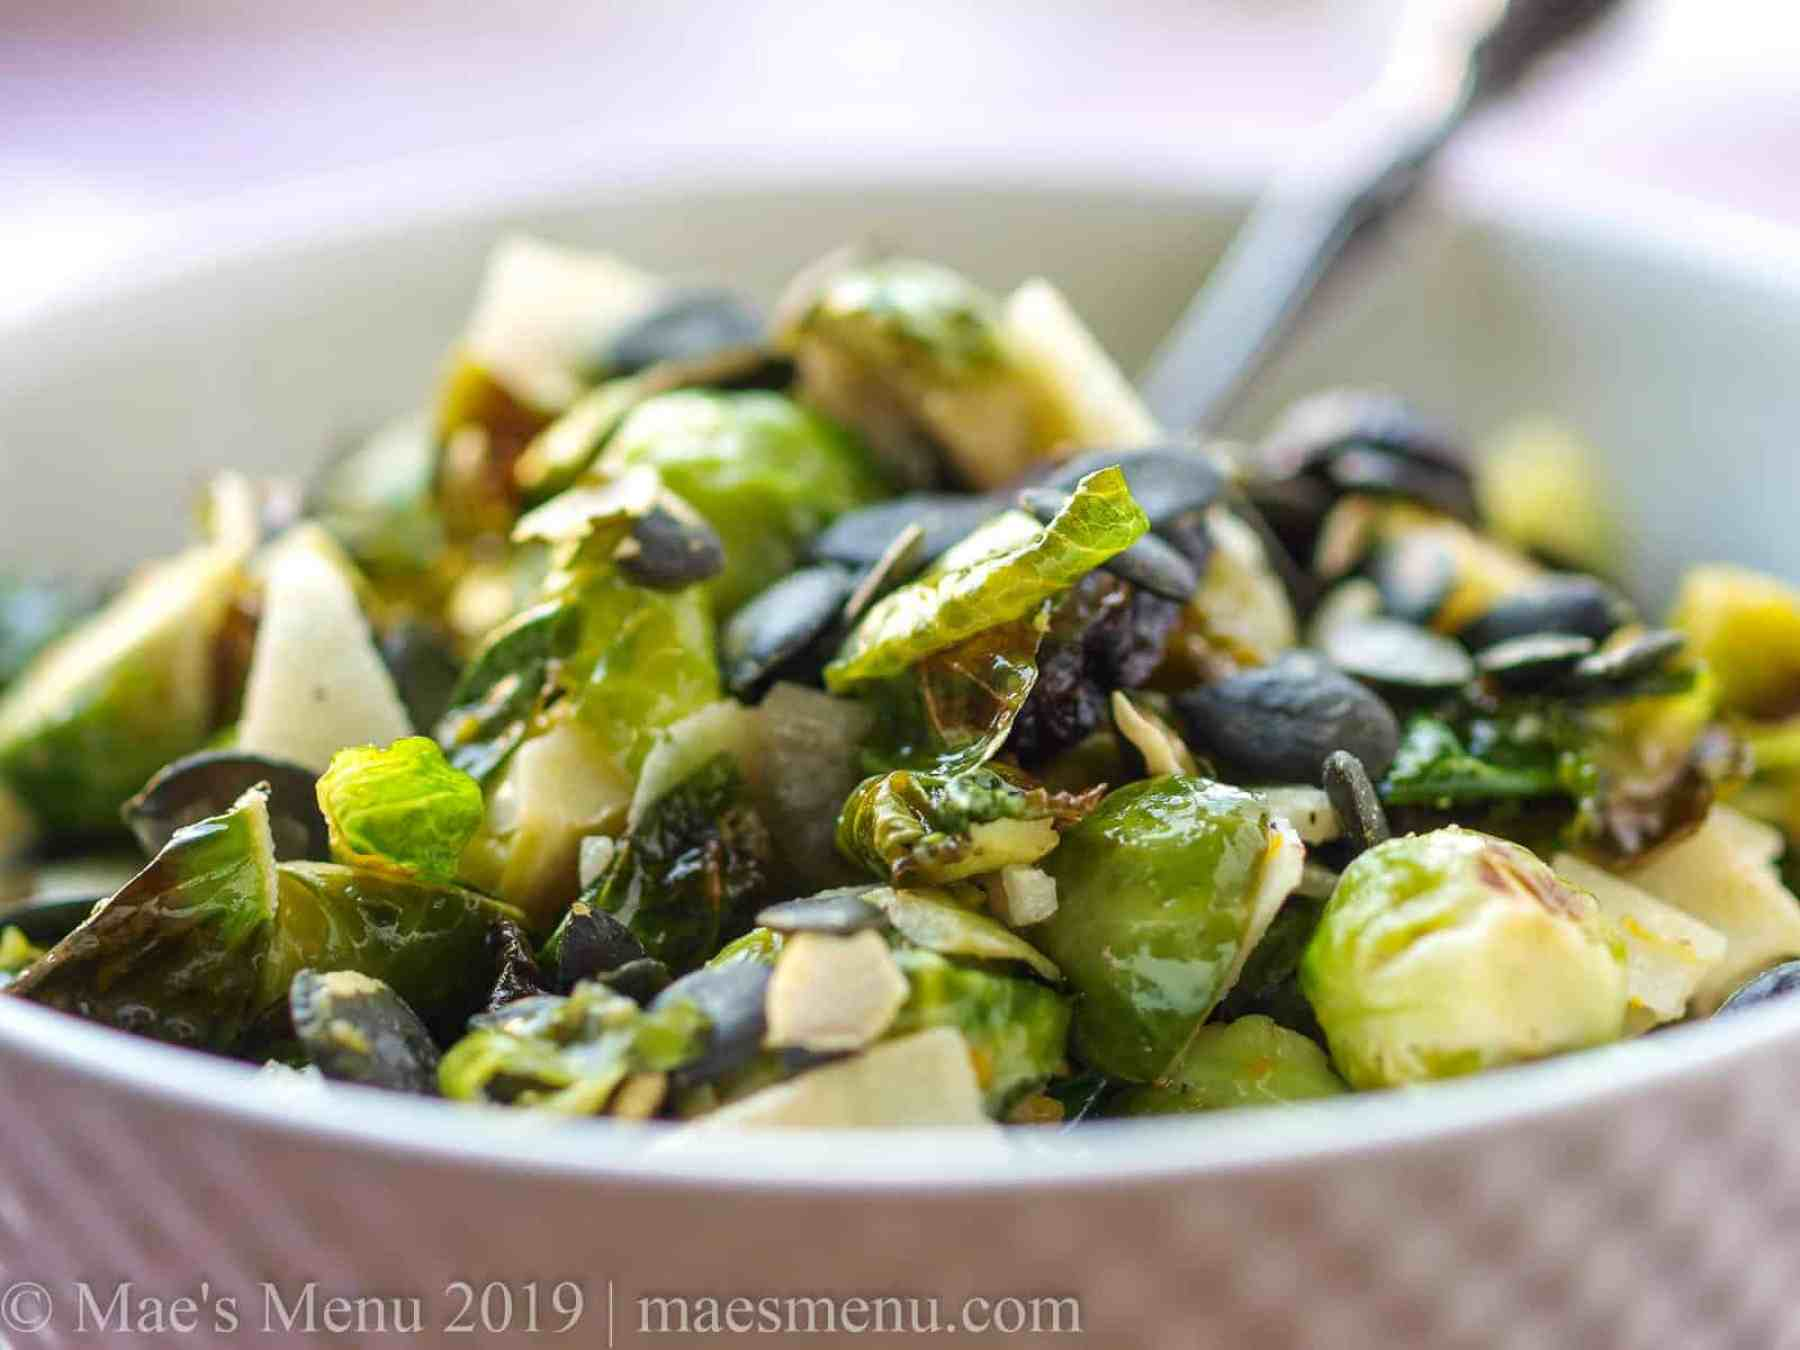 Up-close shot of healthy roasted brussels sprouts with manchego cheese, dried figs, and pumpkin seeds